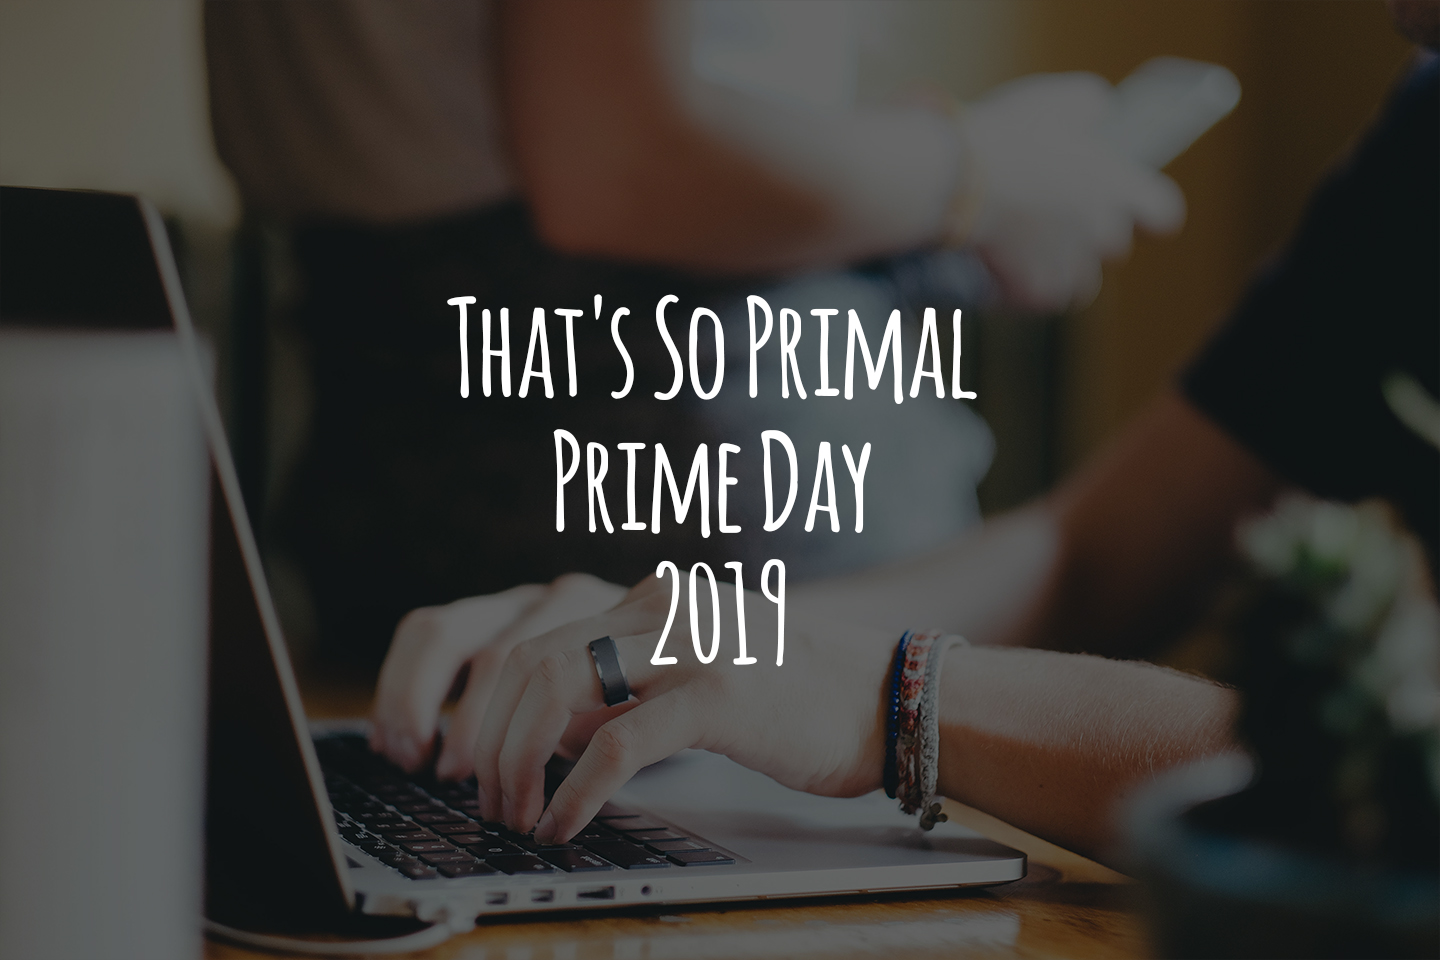 That's So Primal Prime Day 2019 header